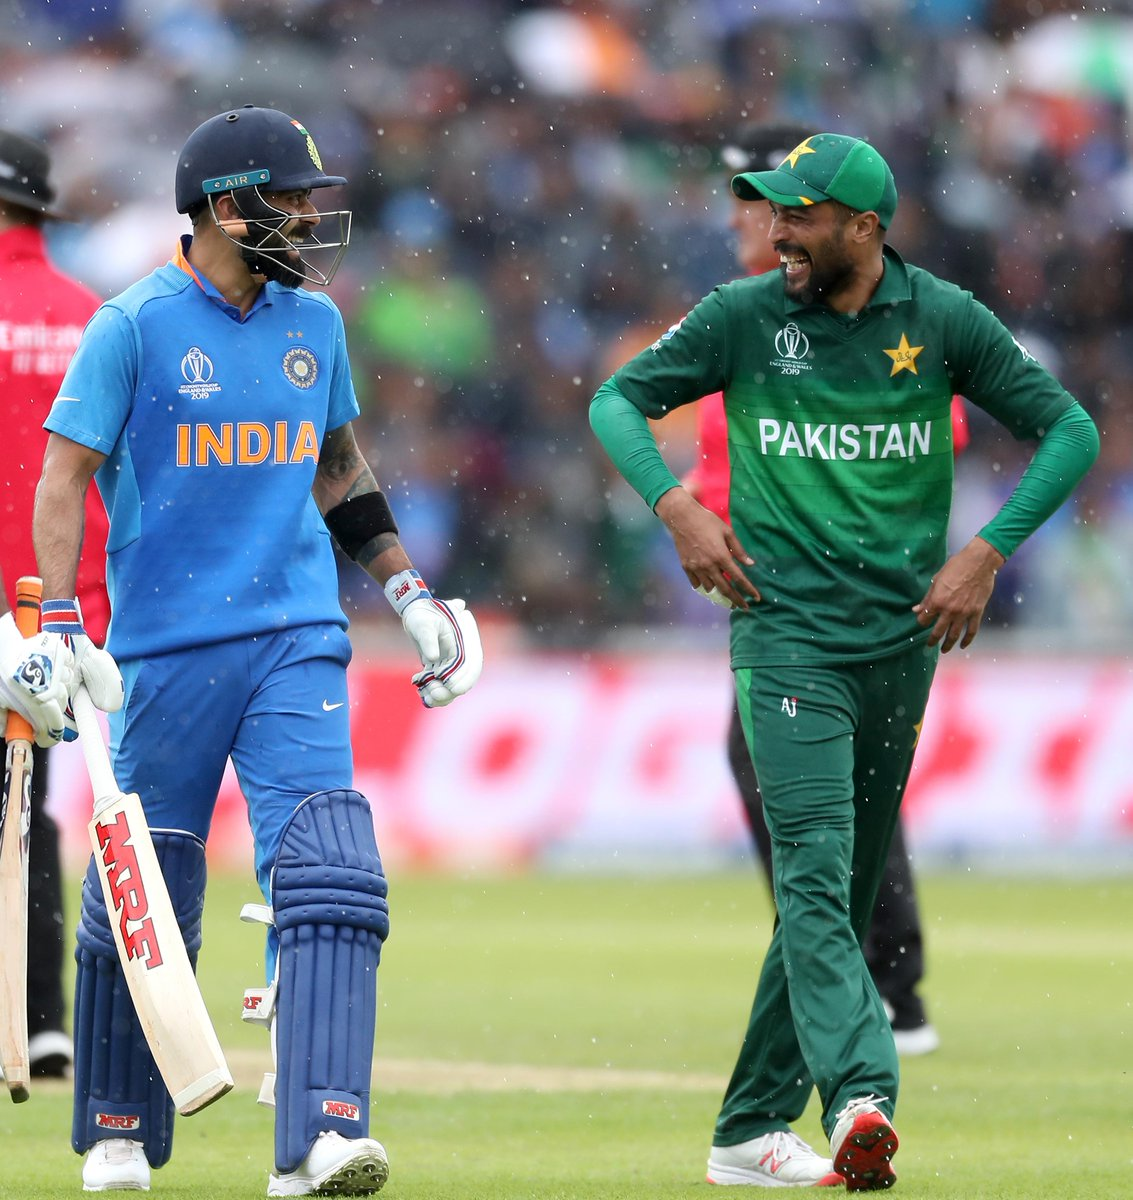 There's always time for a laugh 😄#INDvPAK #CWC19